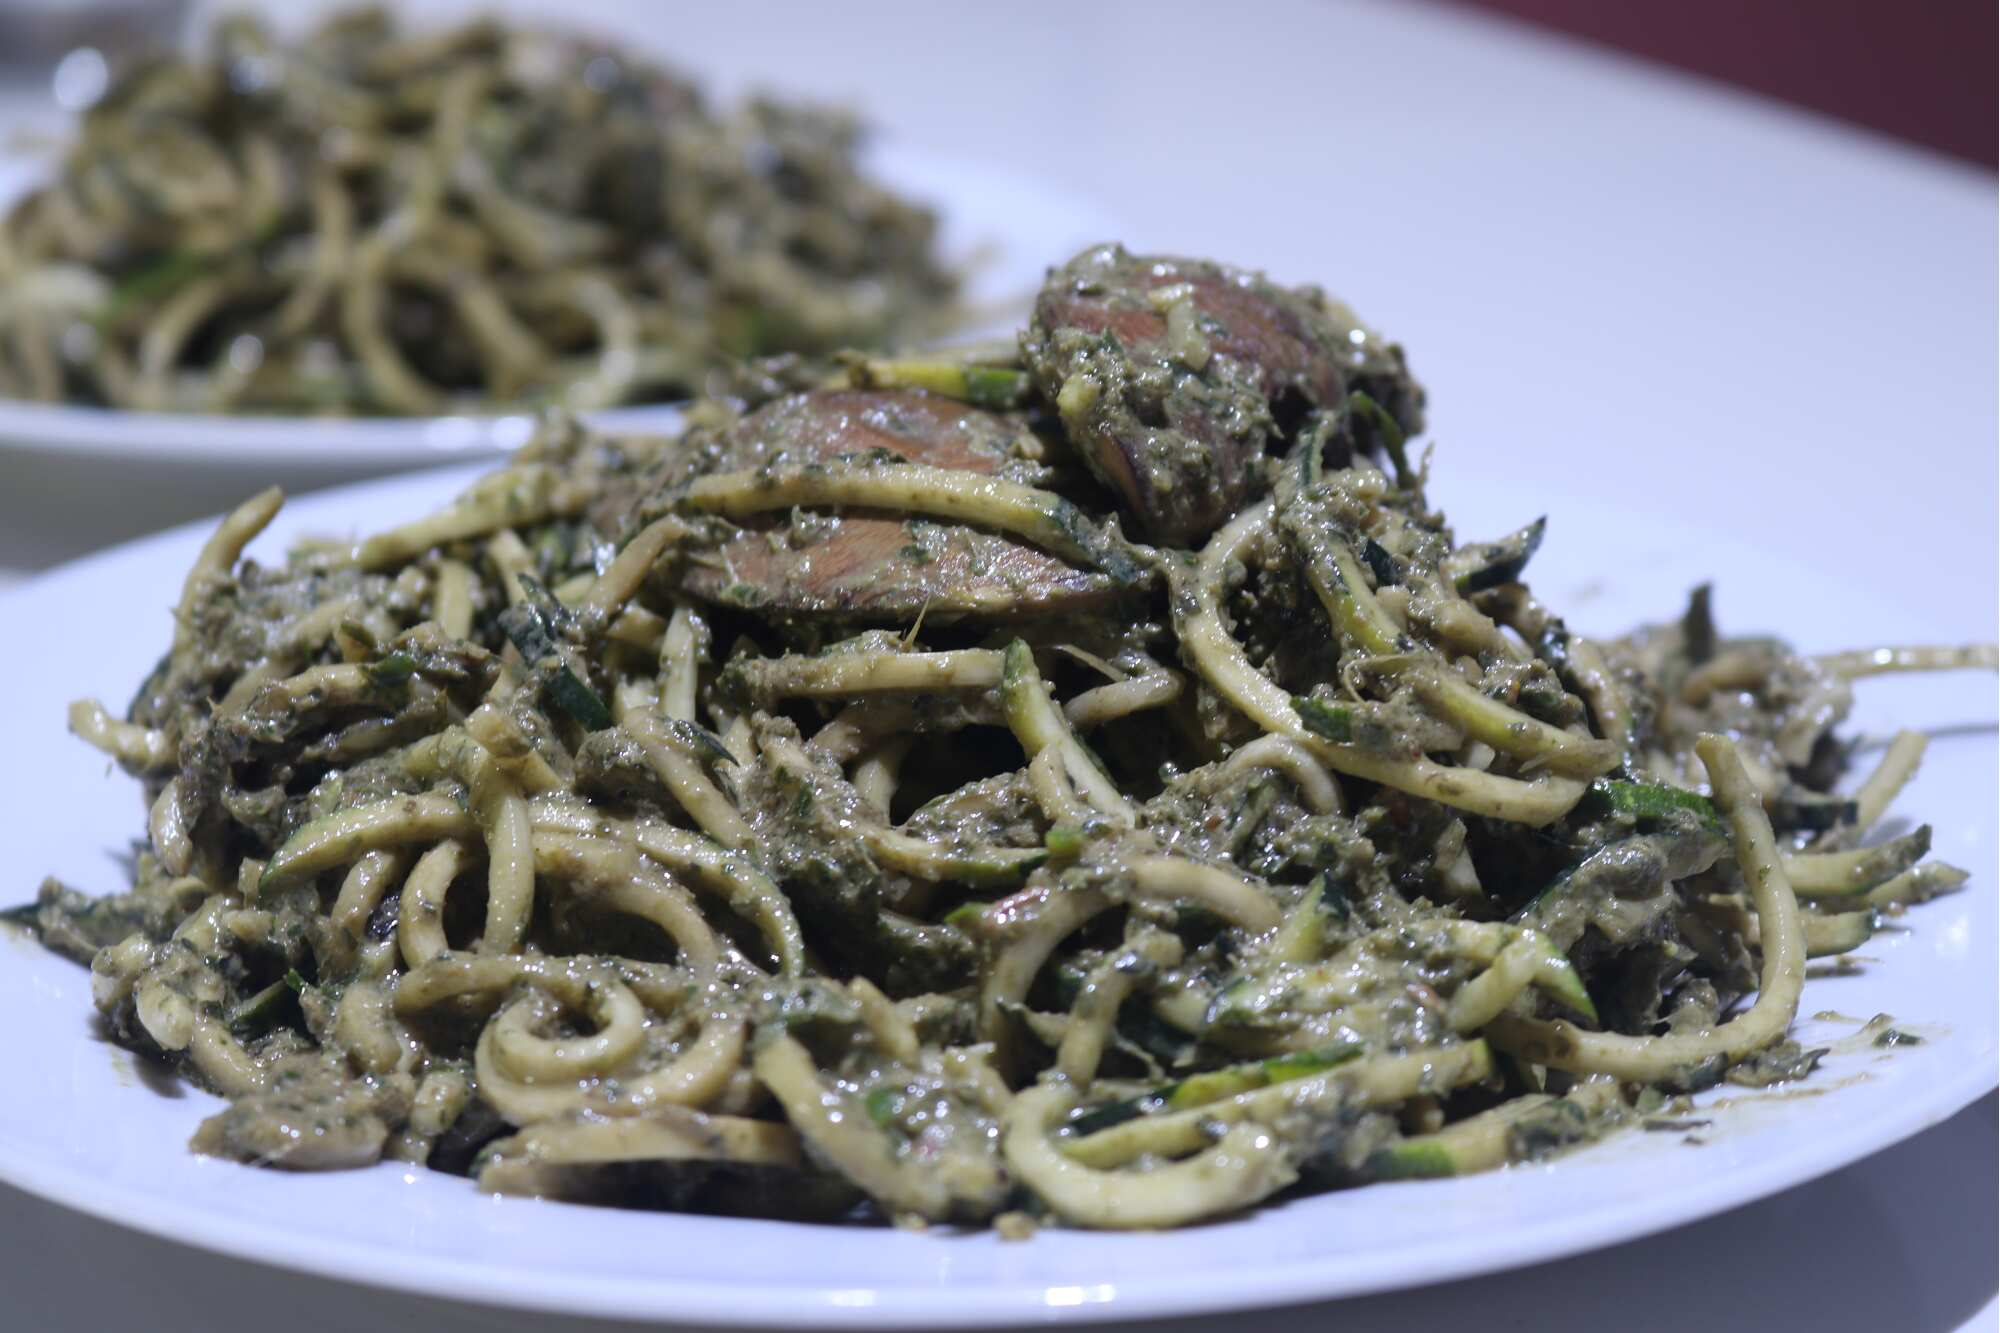 Zuchini Noodles with Basil Pesto topped with Portobelo Mushroom